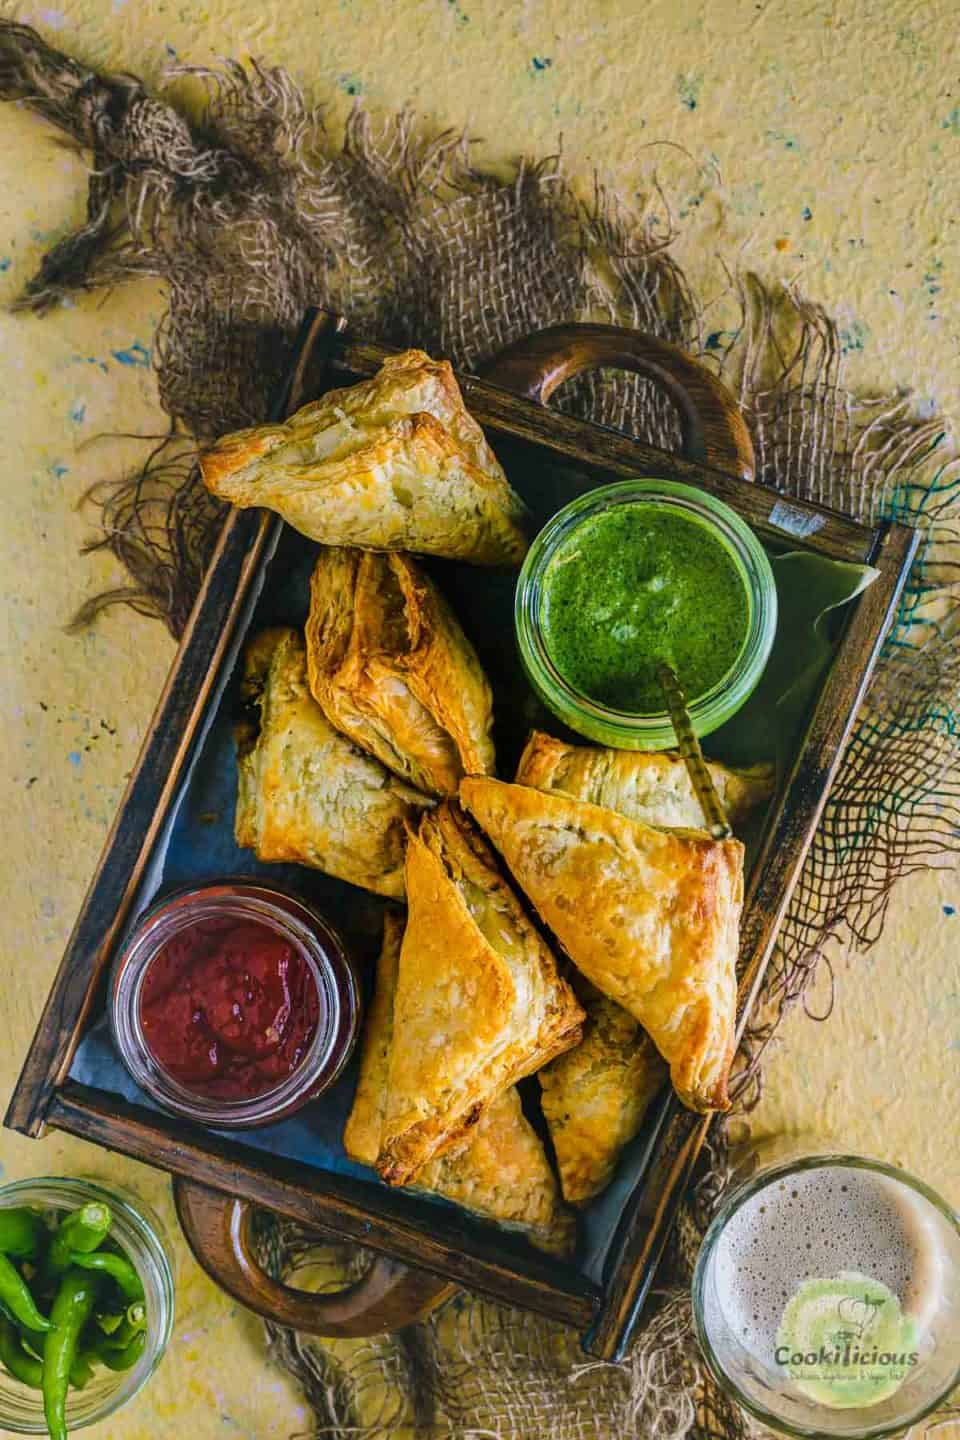 Vegetable Puff Pastry Samosa served in a tray with ketchup and chutney on the side